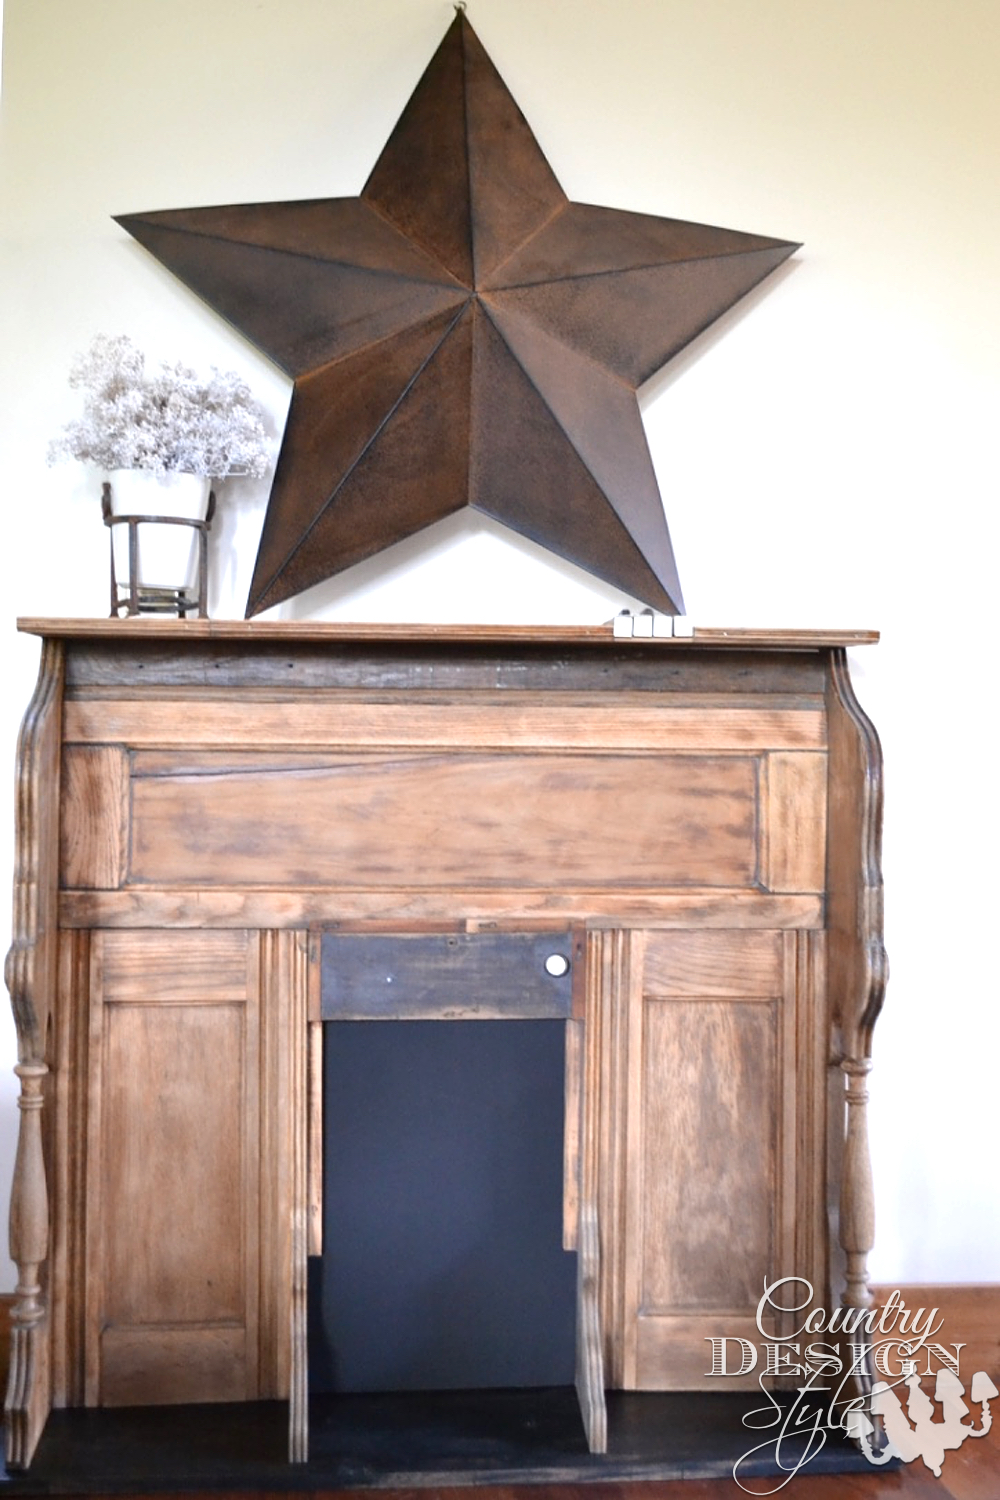 Organ makeover into faux mantel decorated with large metal star and vase of babies breath. The firebox area is CHALKBOARD. PIANO or ORGAN KEYS are designed into the top. | countrydesignstyle.com